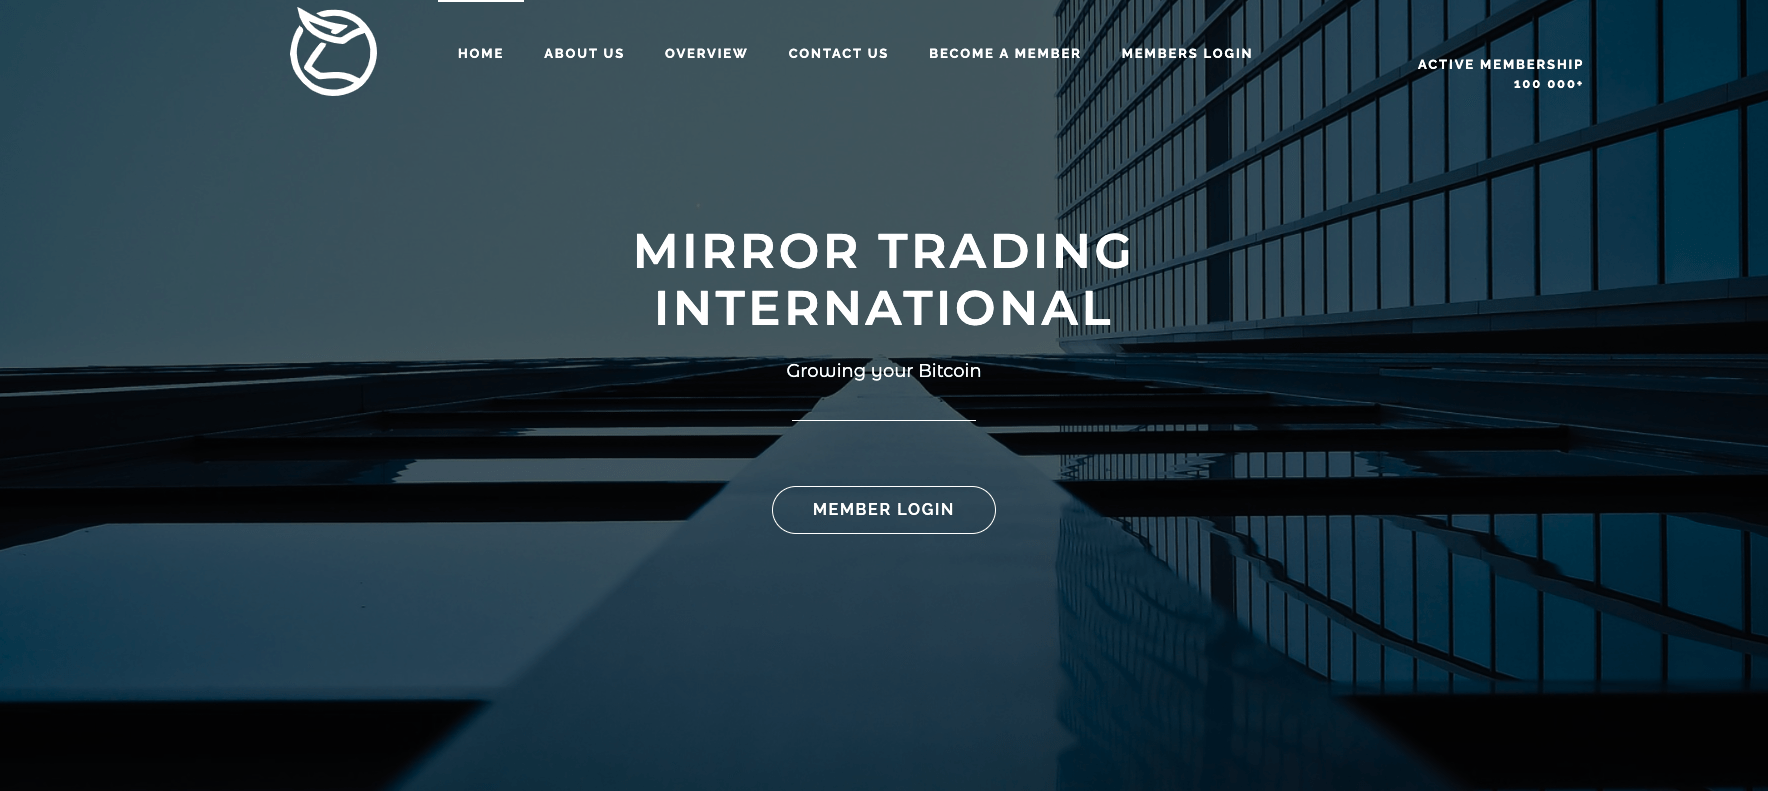 Mirror Trading International news release